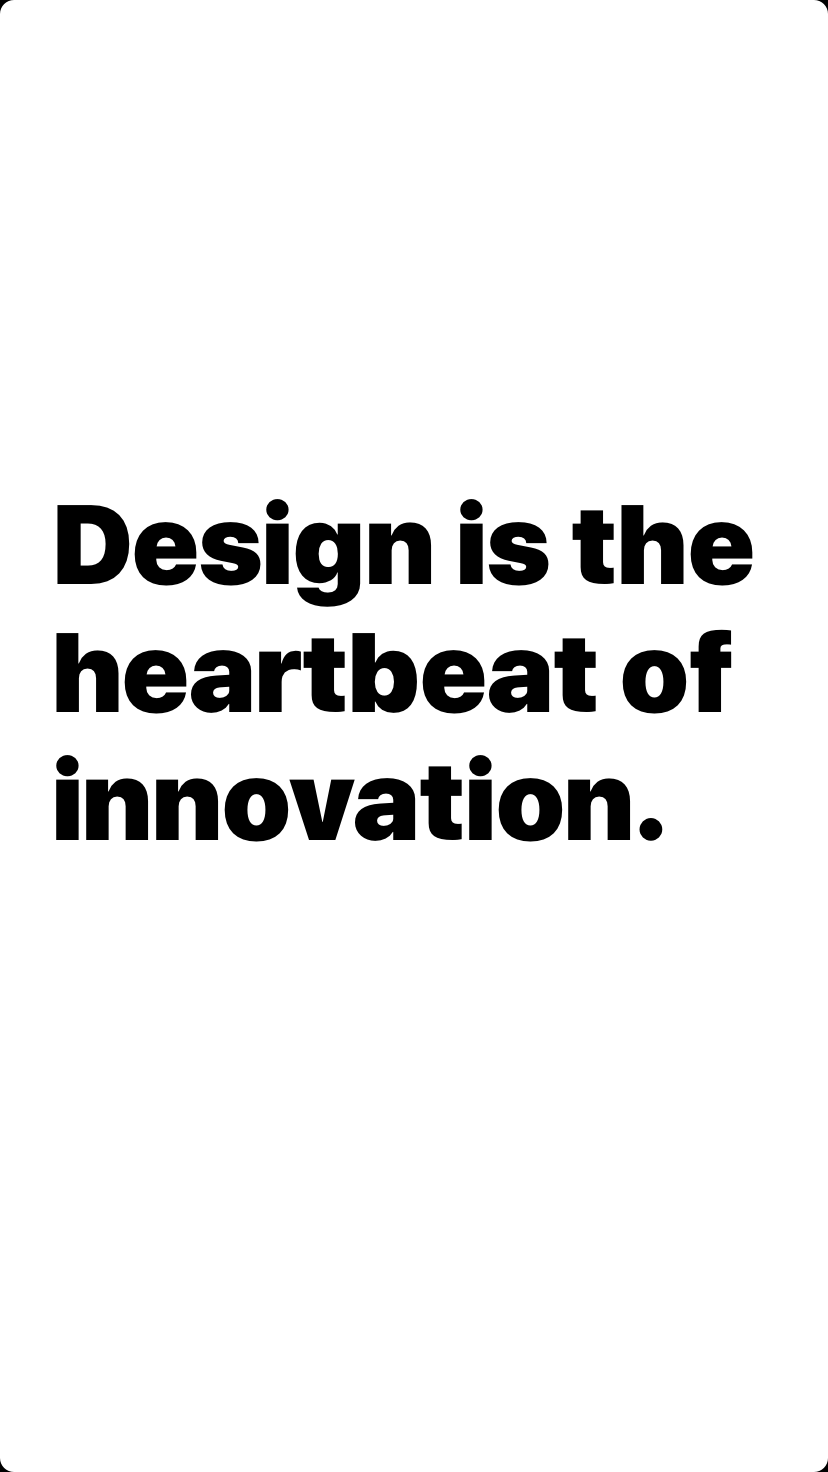 Design is the heartbeat of innovation.